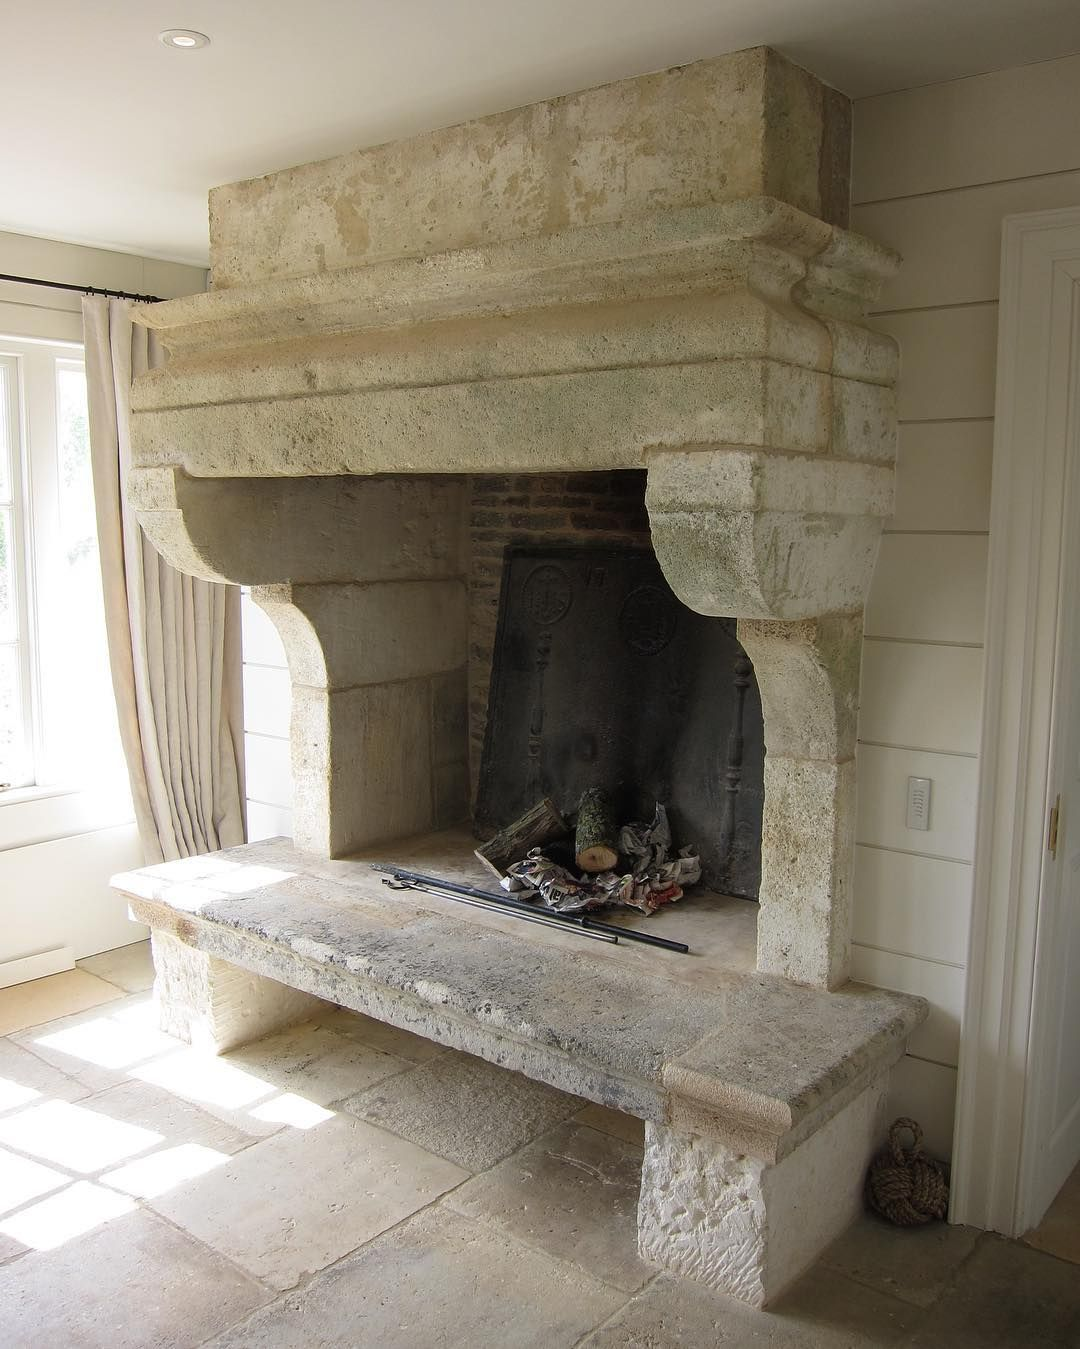 Pin By Lil On New House In 2020 Kitchen Fireplace French Stone